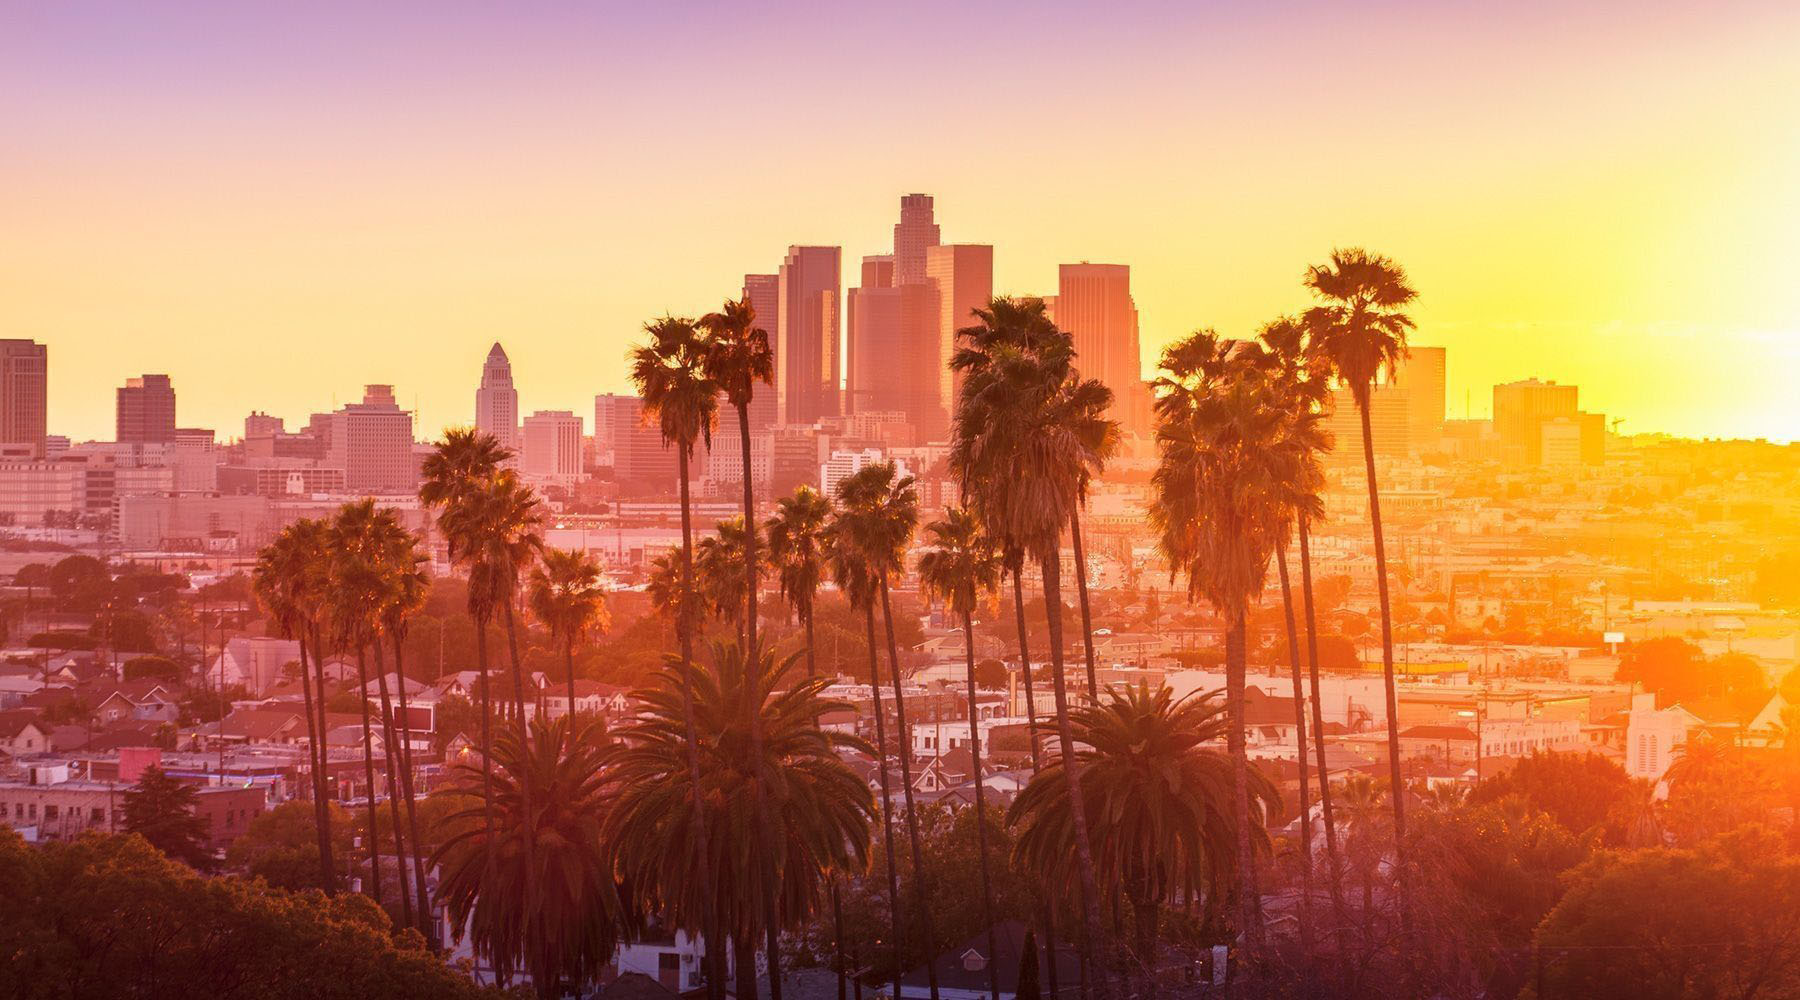 city landscape of los angeles california with palm trees